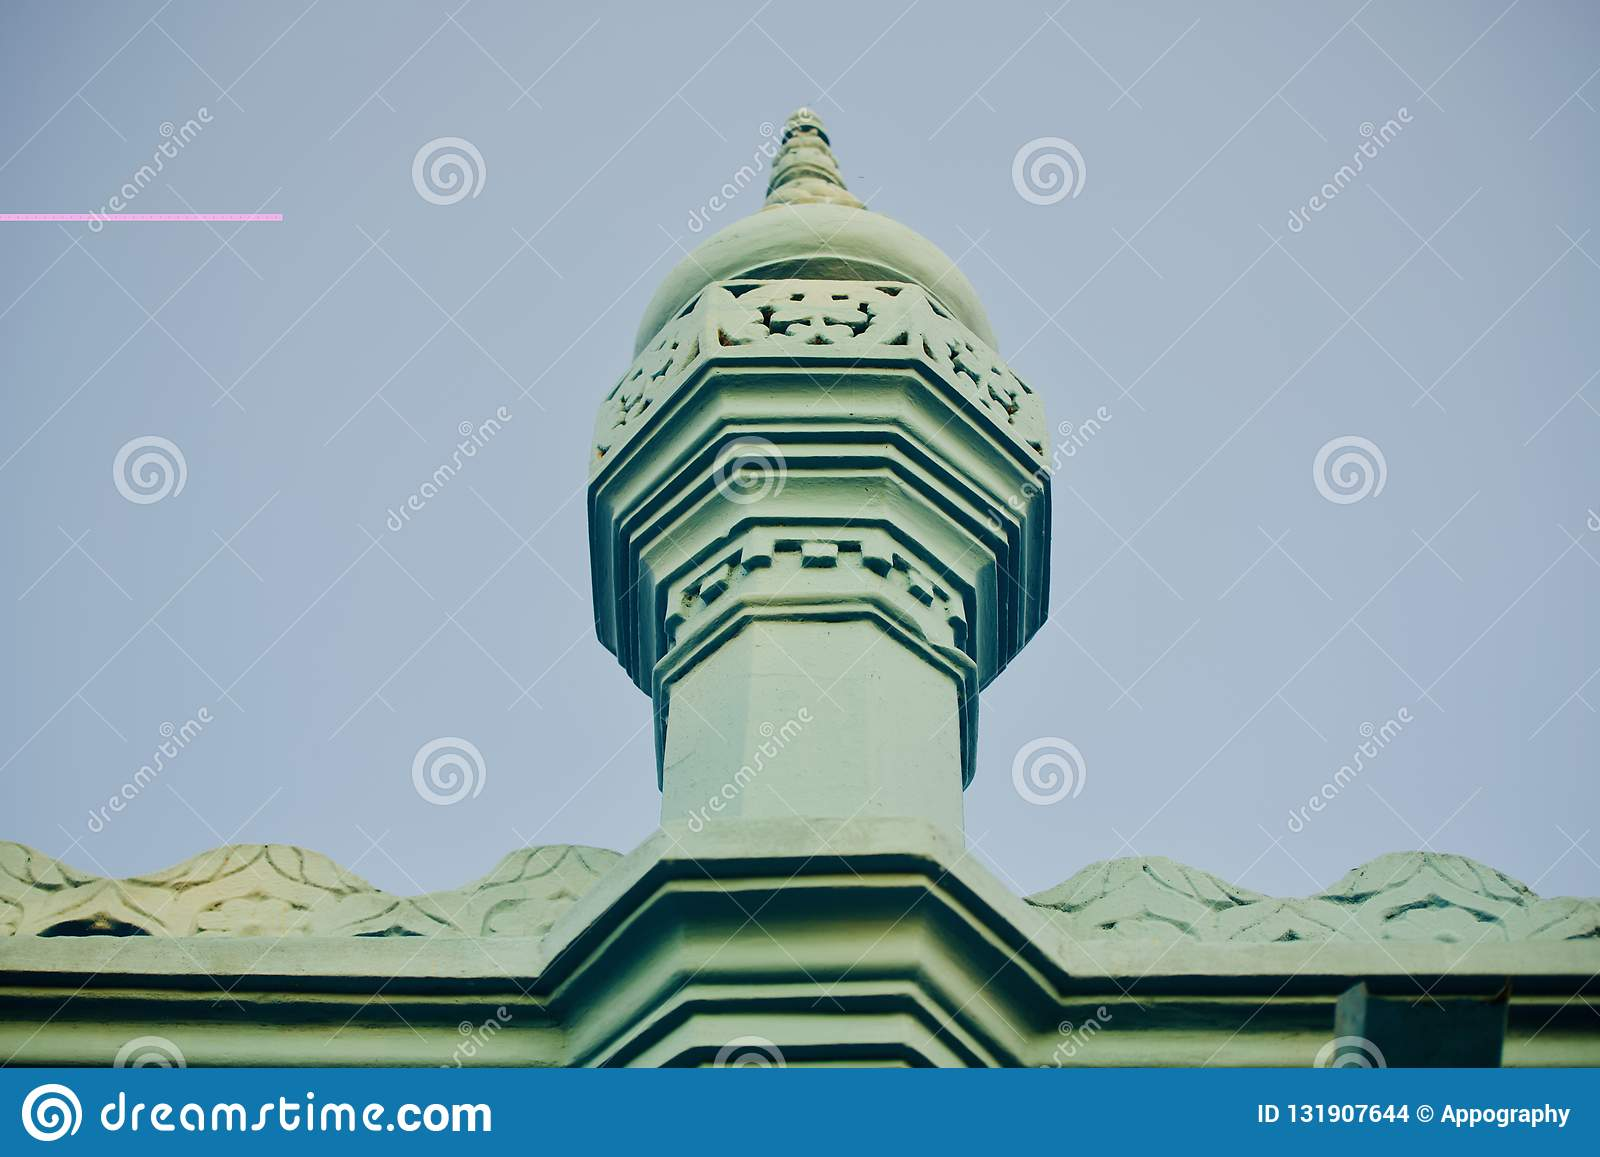 Isolated minarets of a mosque unique photo